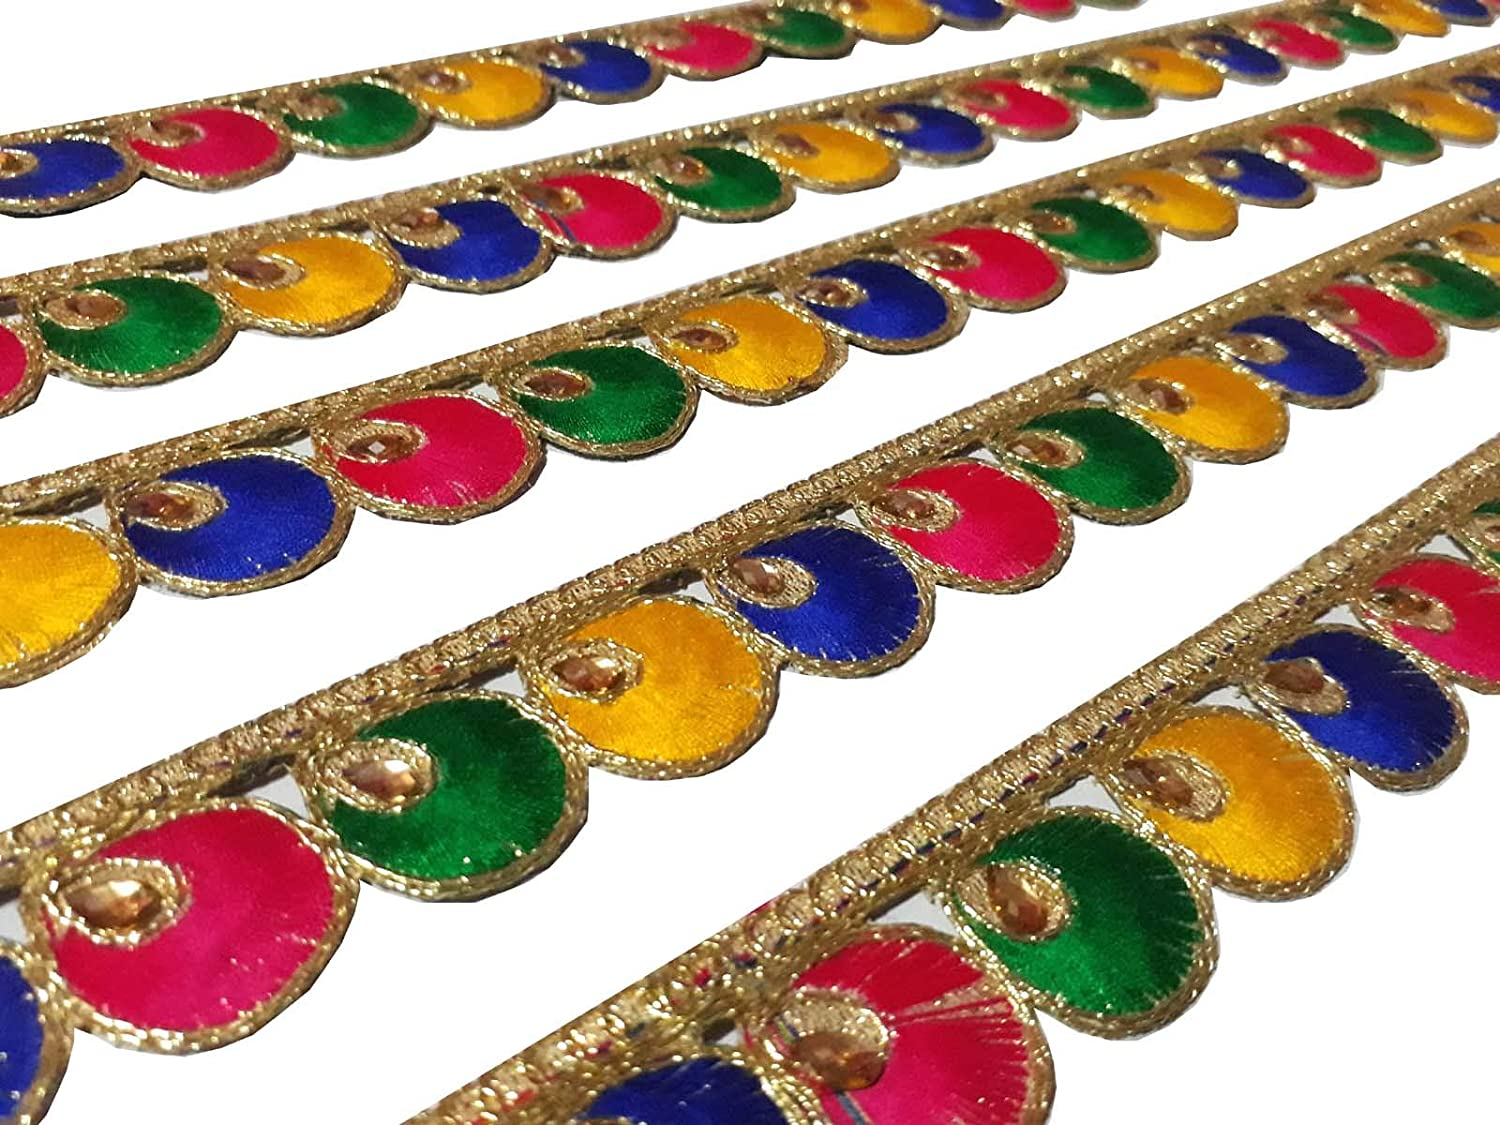 9 Yard Kundan Multicolor Trim Dupatta,Saree,Sari Kundan Lace,Glass Beads,Stone Work Border,Bollywood Sari,Wedding Golden